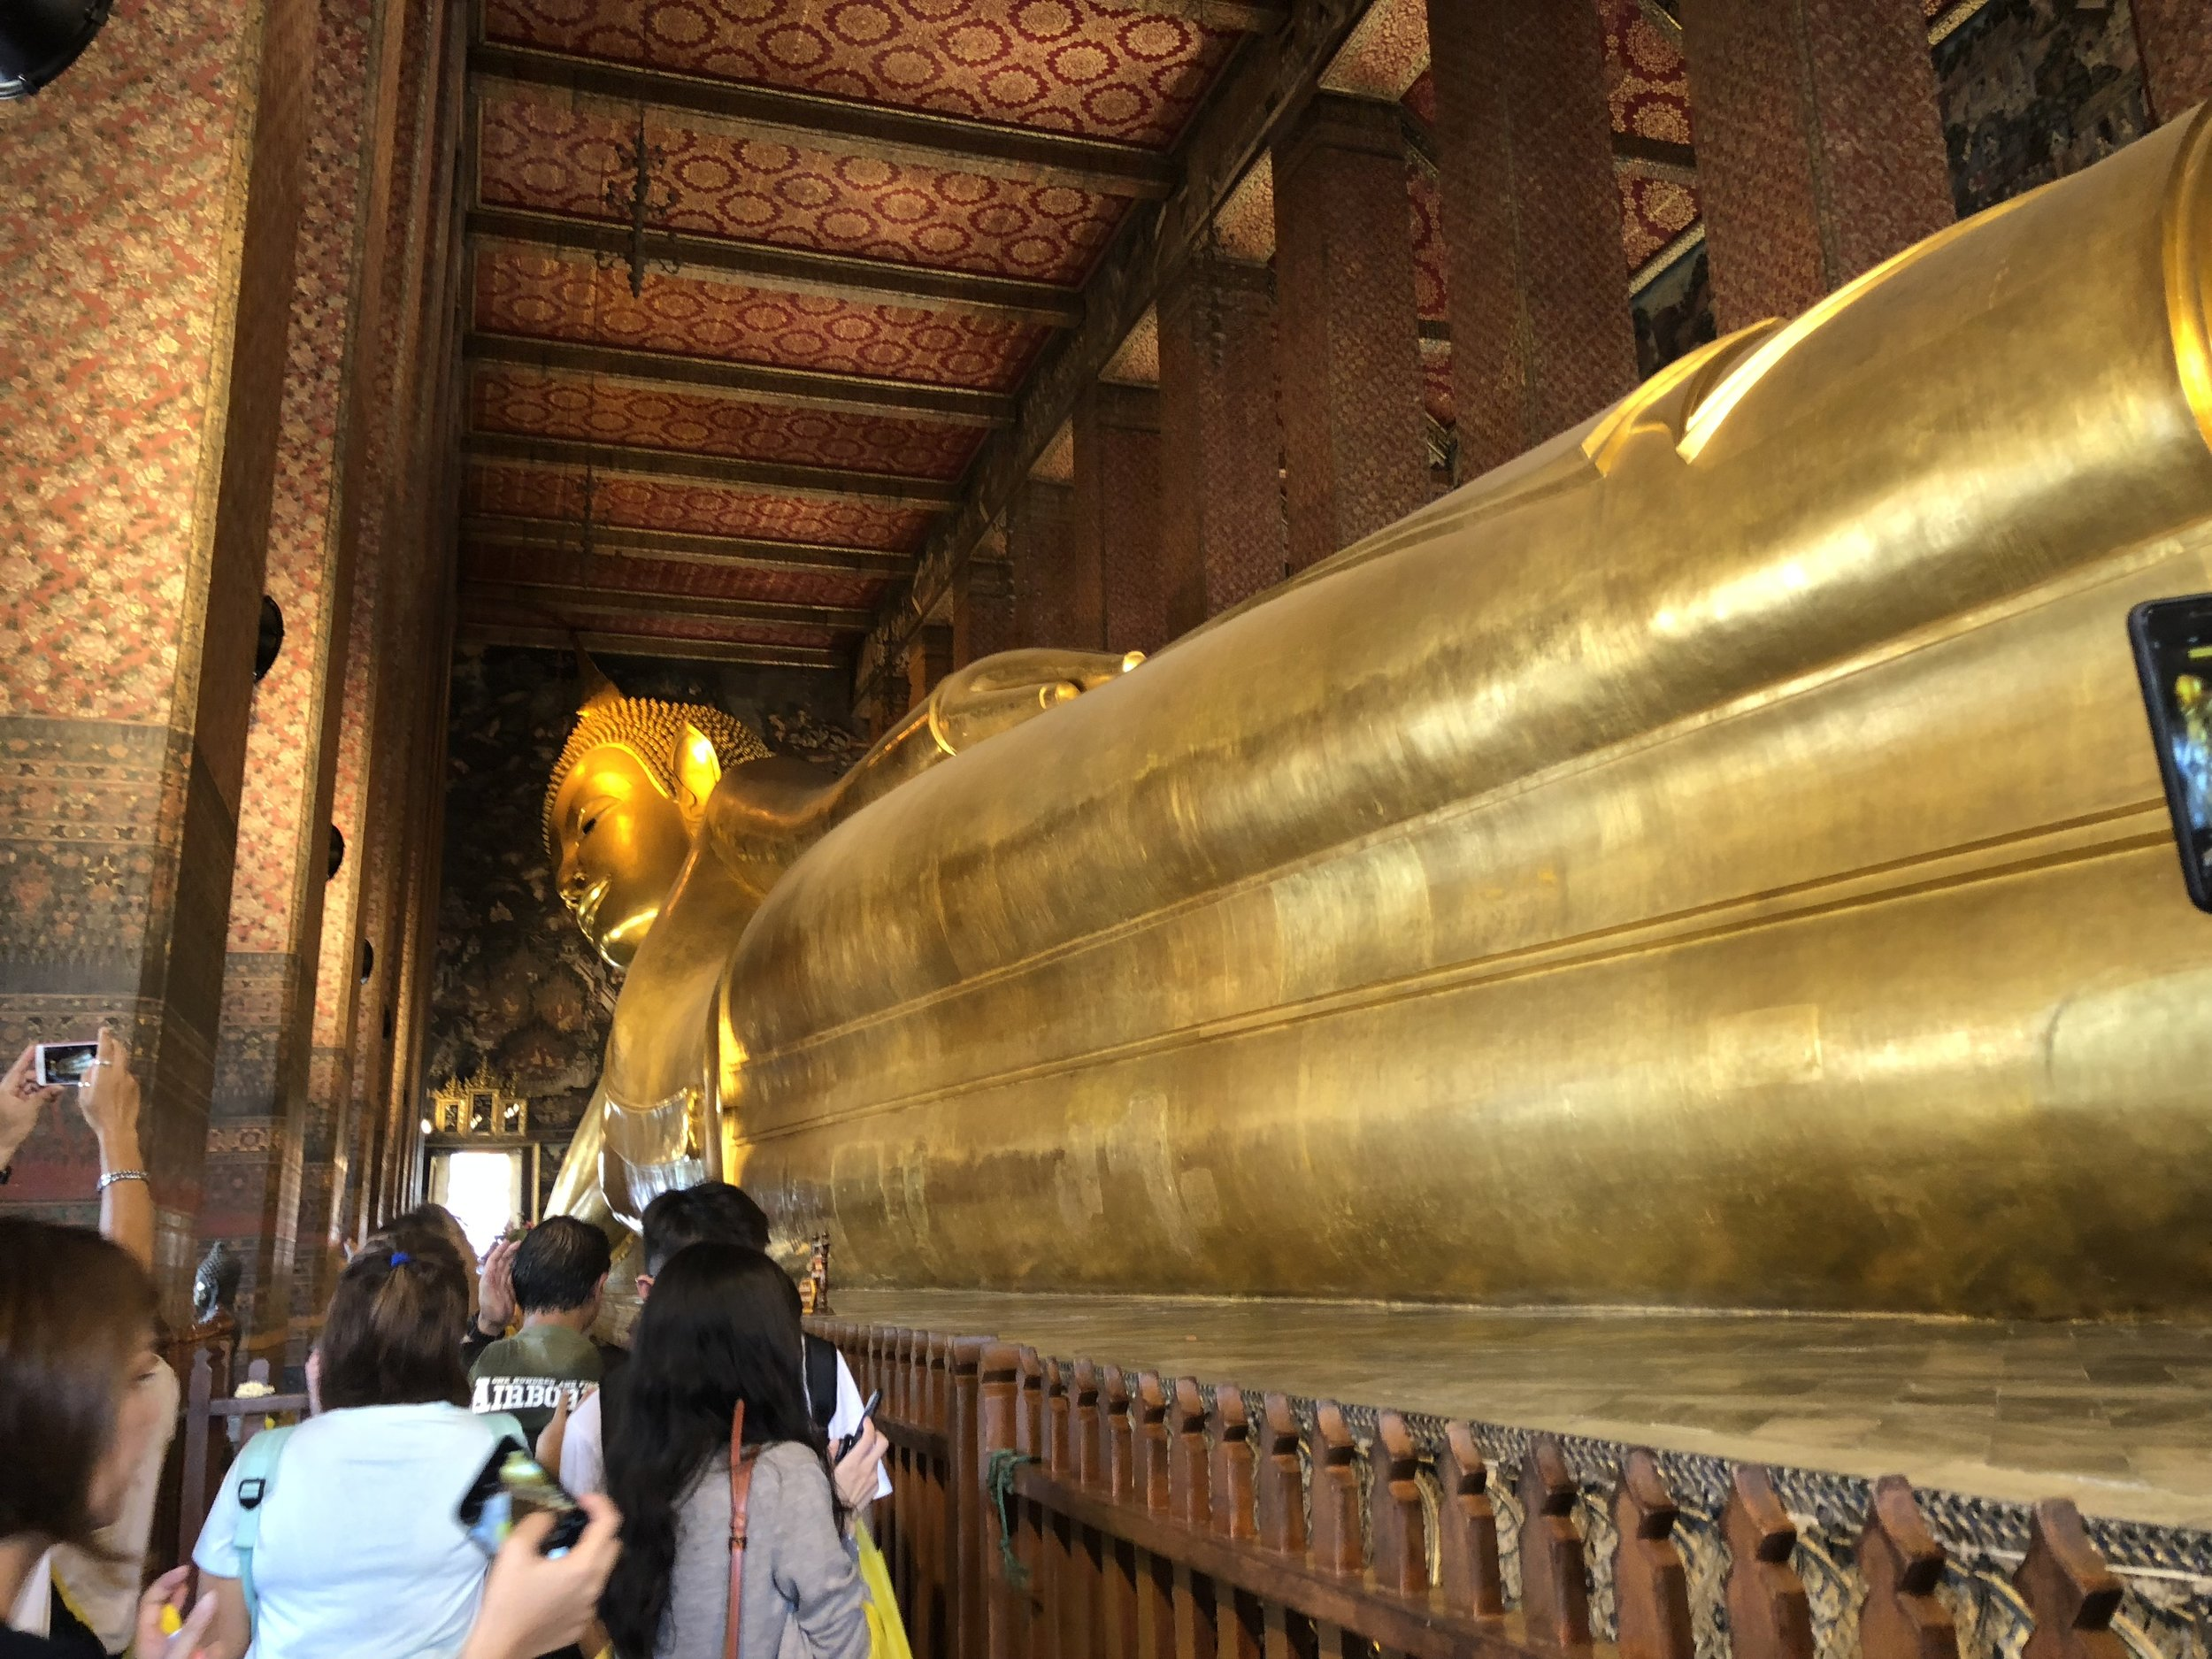 A look at the Reclining Buddha from its toes. The entire statue is 46 meters long at 15 meters high. The reclining position meant that the Buddha reached nirvana, and this statue is one of many Reclining Buddhas are the world.